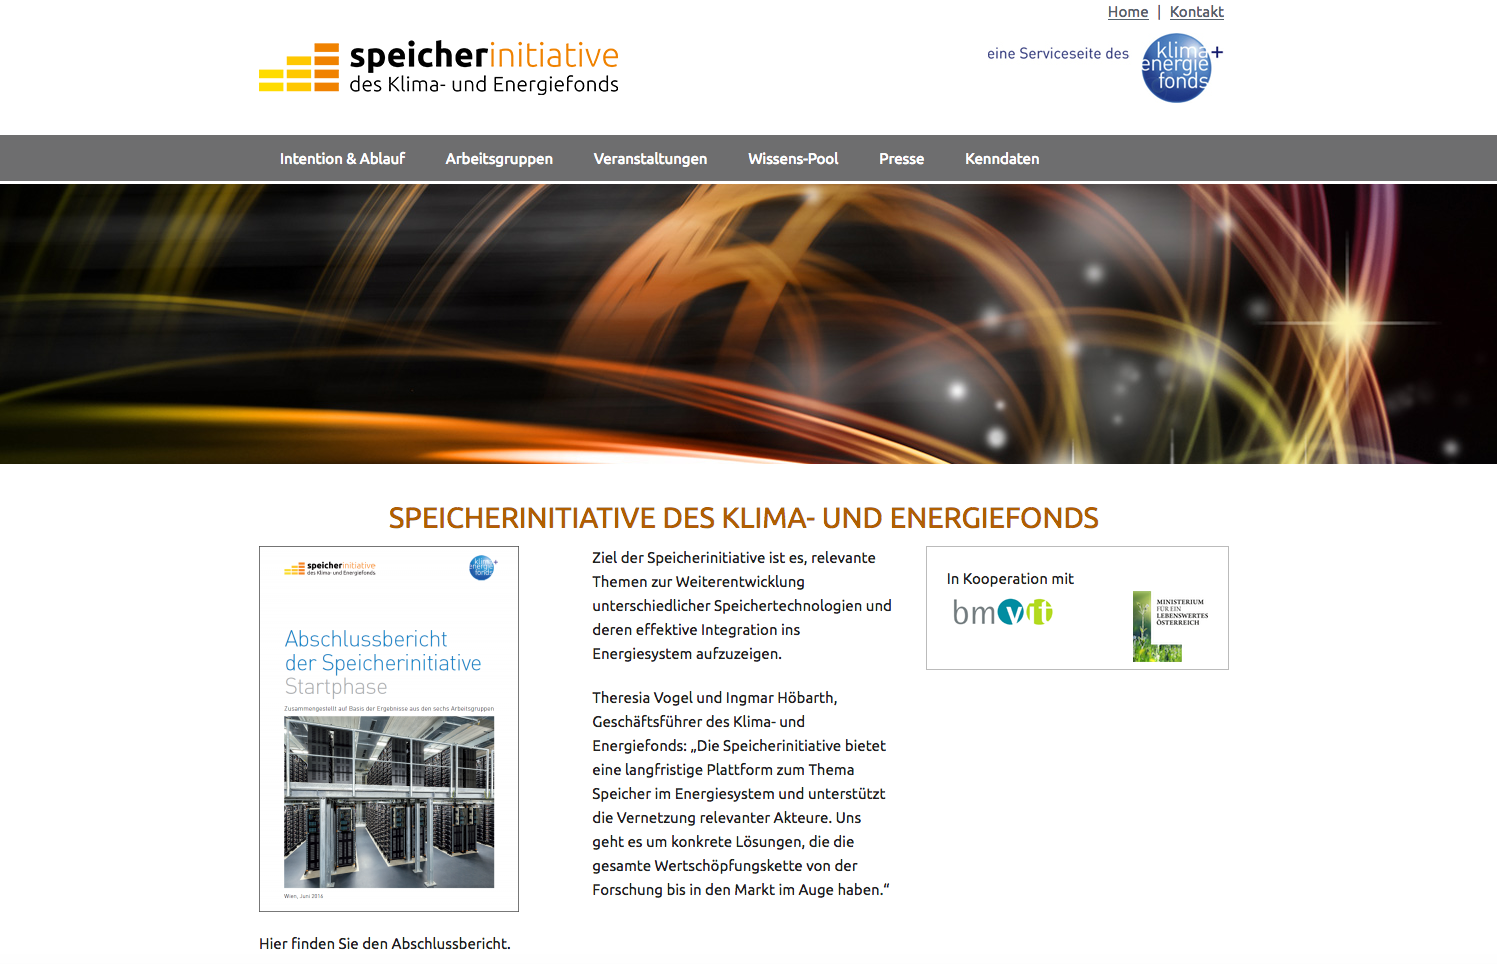 Speicherinitiative